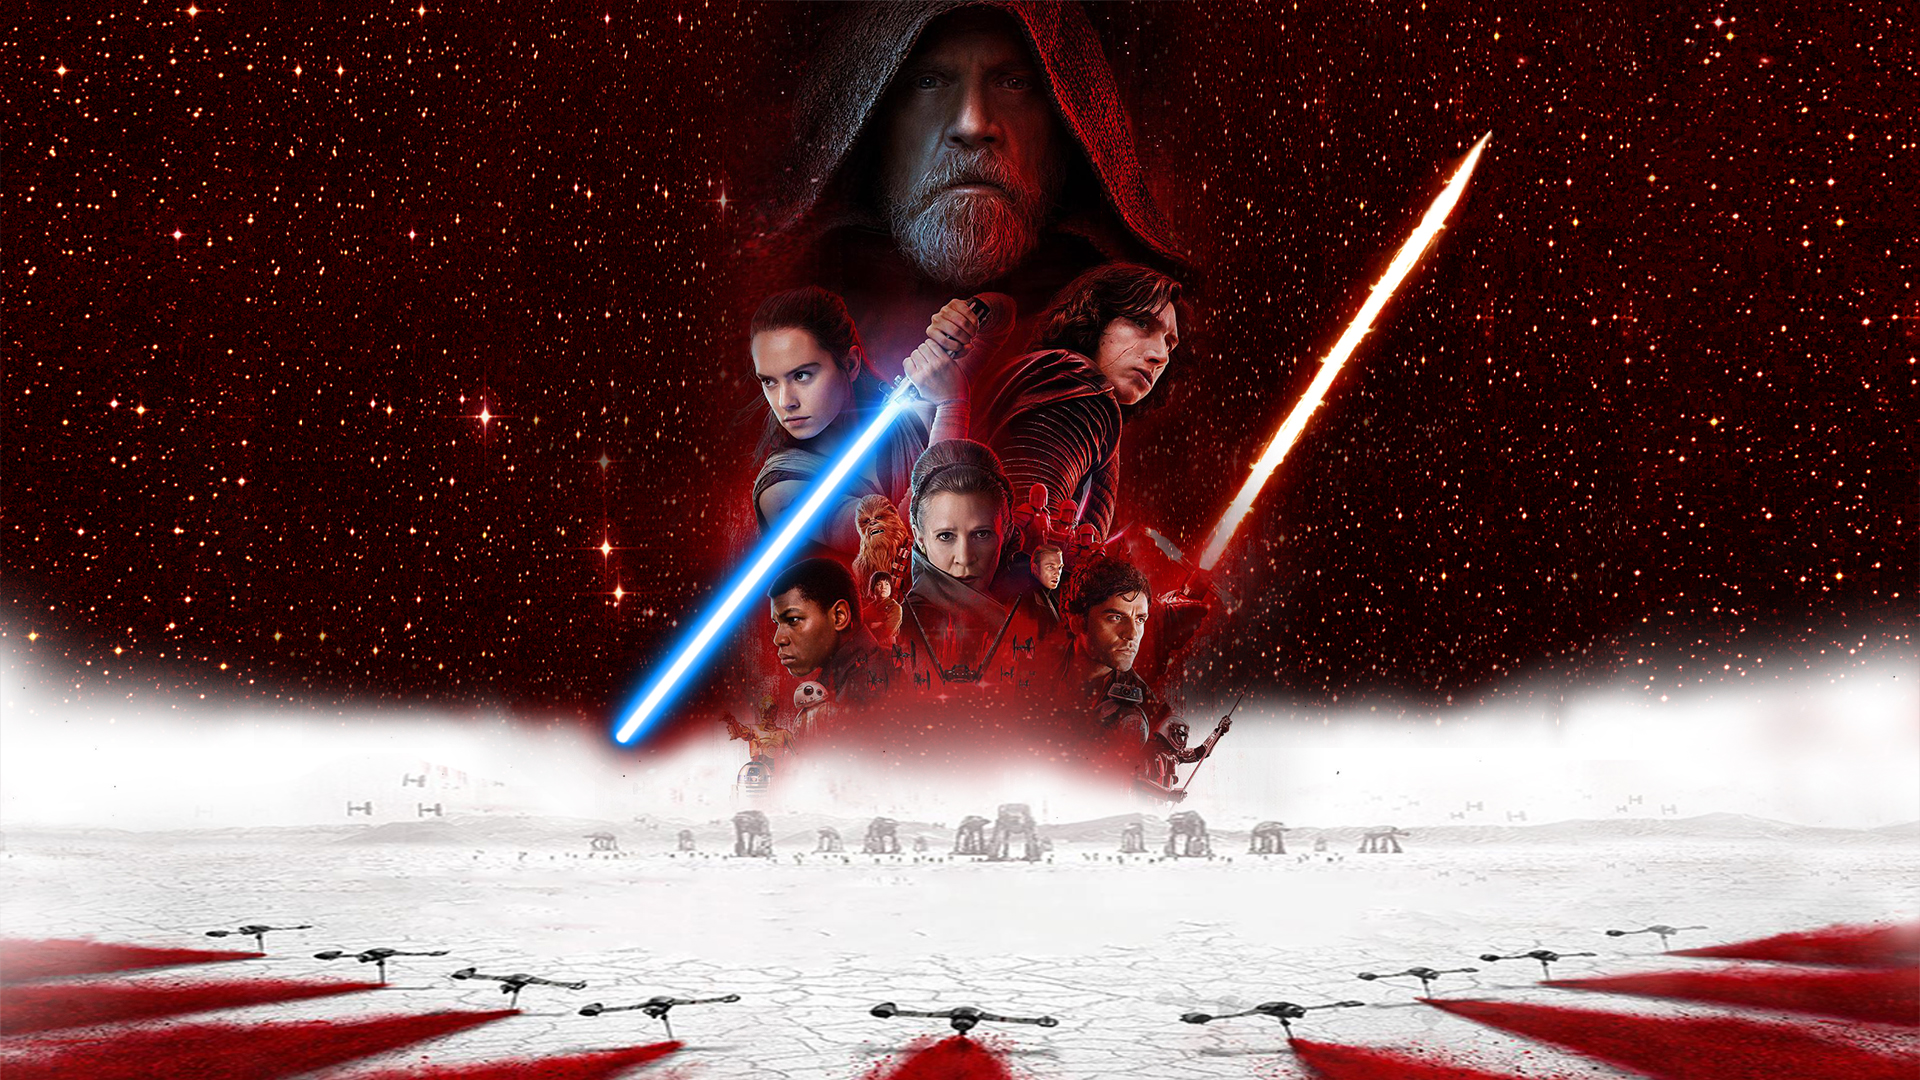 Star Wars The Last Jedi Wallpaper By The Dark Mamba 995 On Deviantart